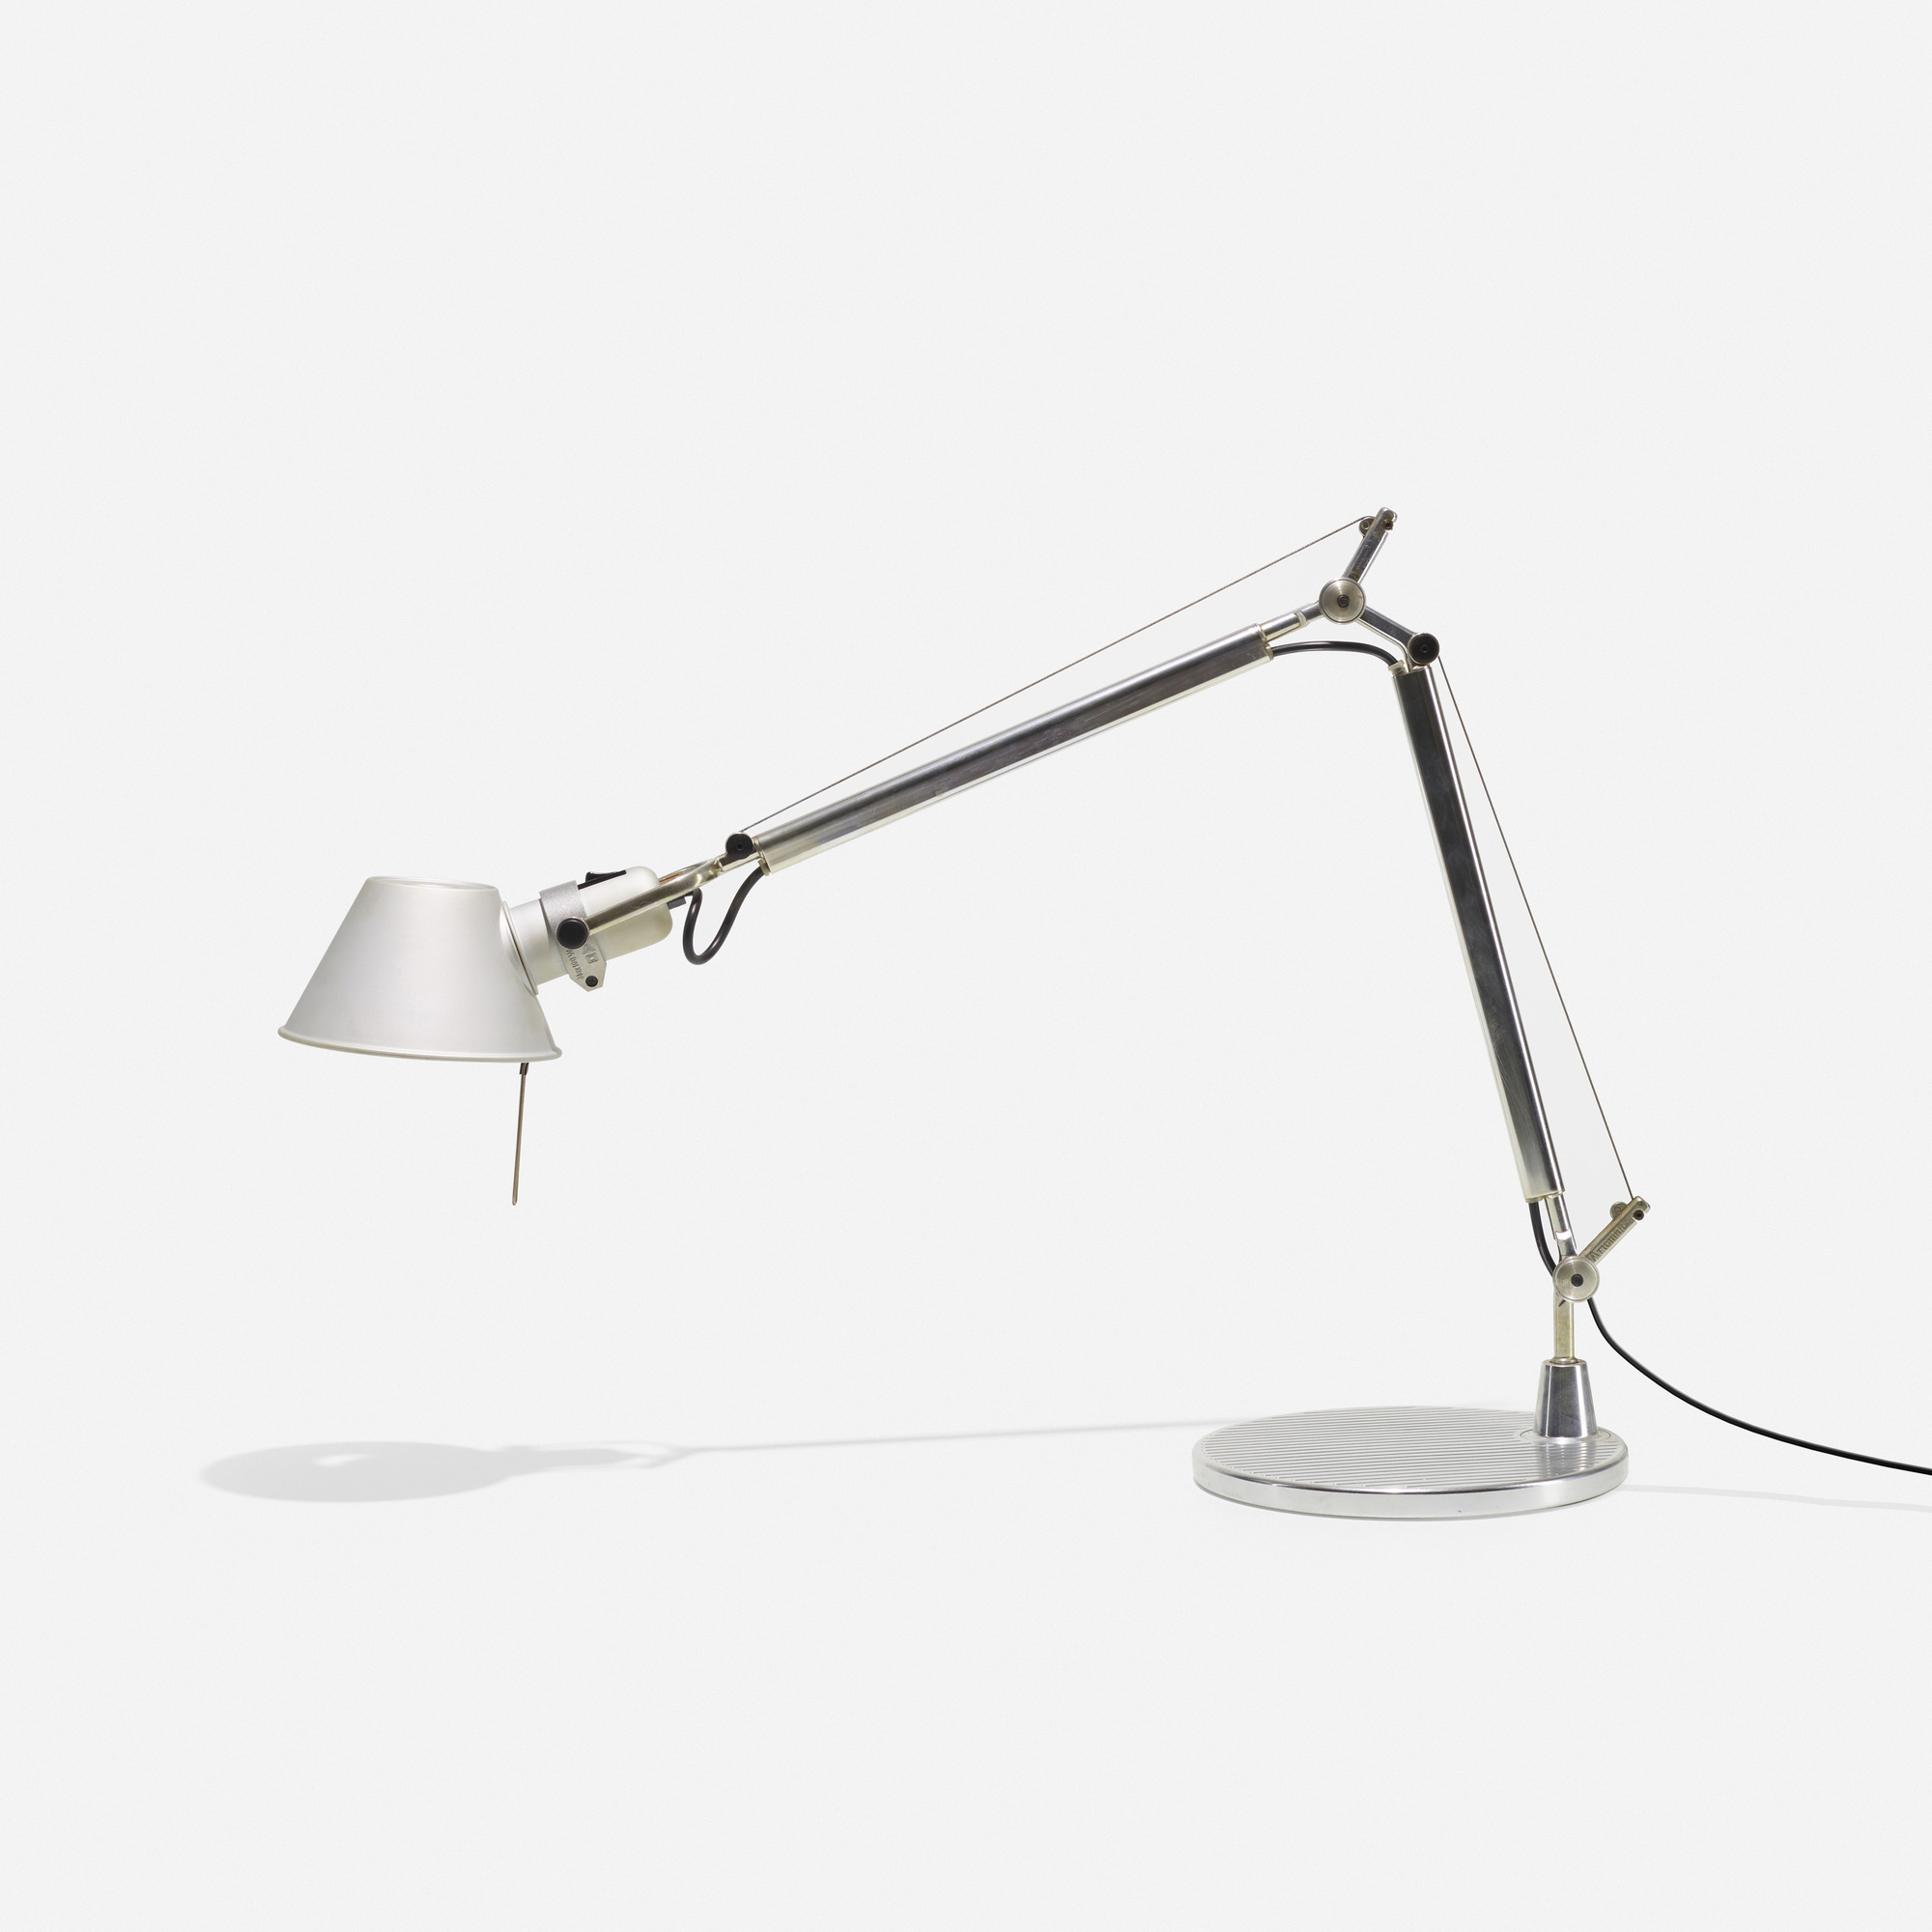 465: Michele De Lucchi and Giancarlo Fassina / Tolomeo table lamp (2 of 3)